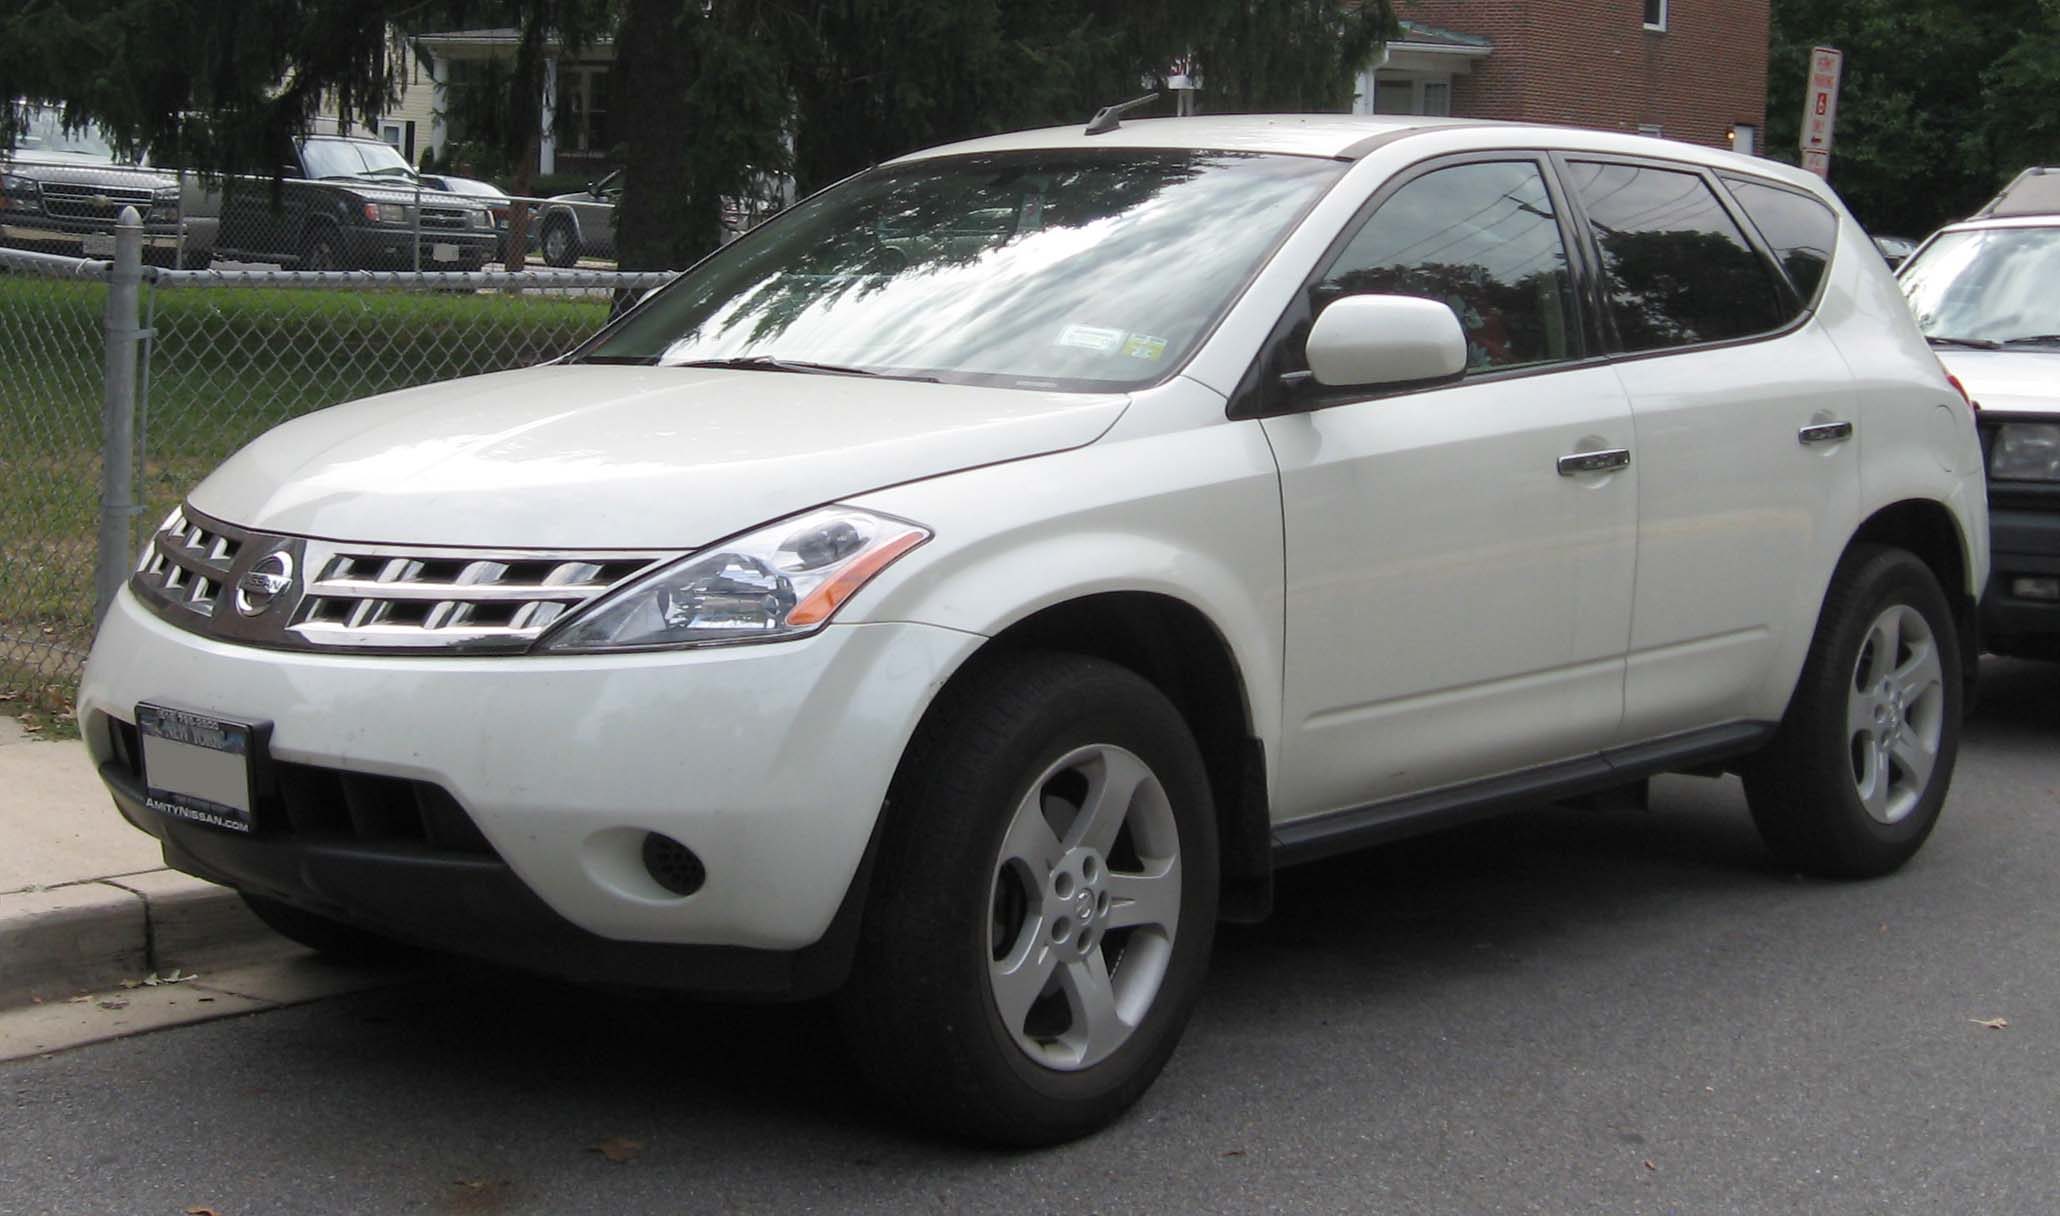 nissan murano 2007 review amazing pictures and images. Black Bedroom Furniture Sets. Home Design Ideas